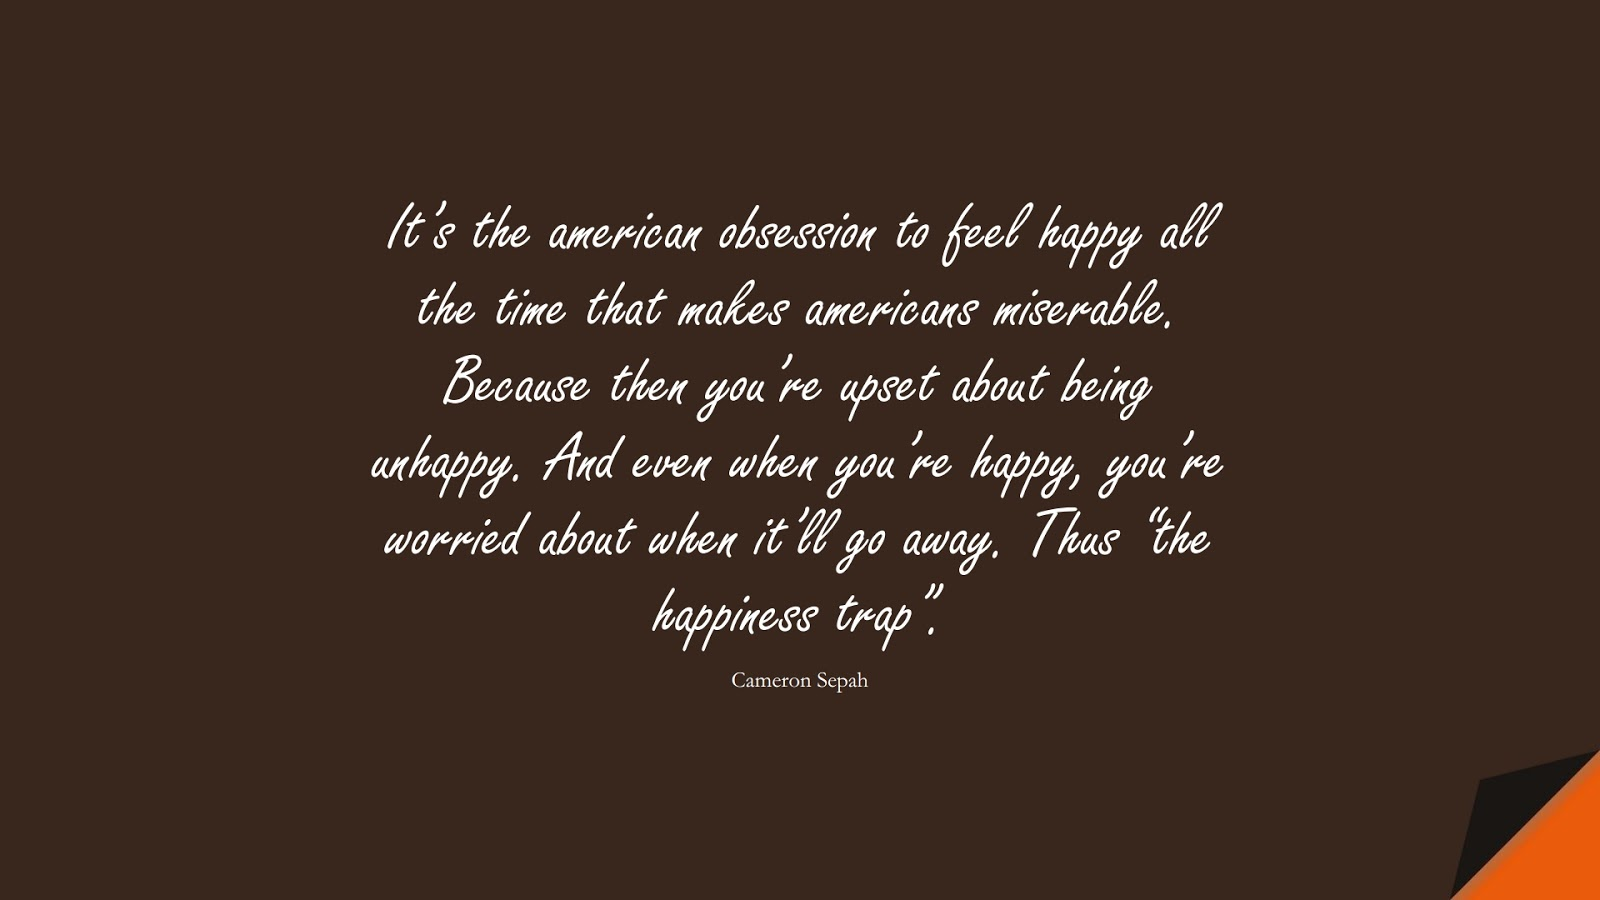 """It's the american obsession to feel happy all the time that makes americans miserable. Because then you're upset about being unhappy. And even when you're happy, you're worried about when it'll go away. Thus """"the happiness trap"""". (Cameron Sepah);  #AnxietyQuotes"""